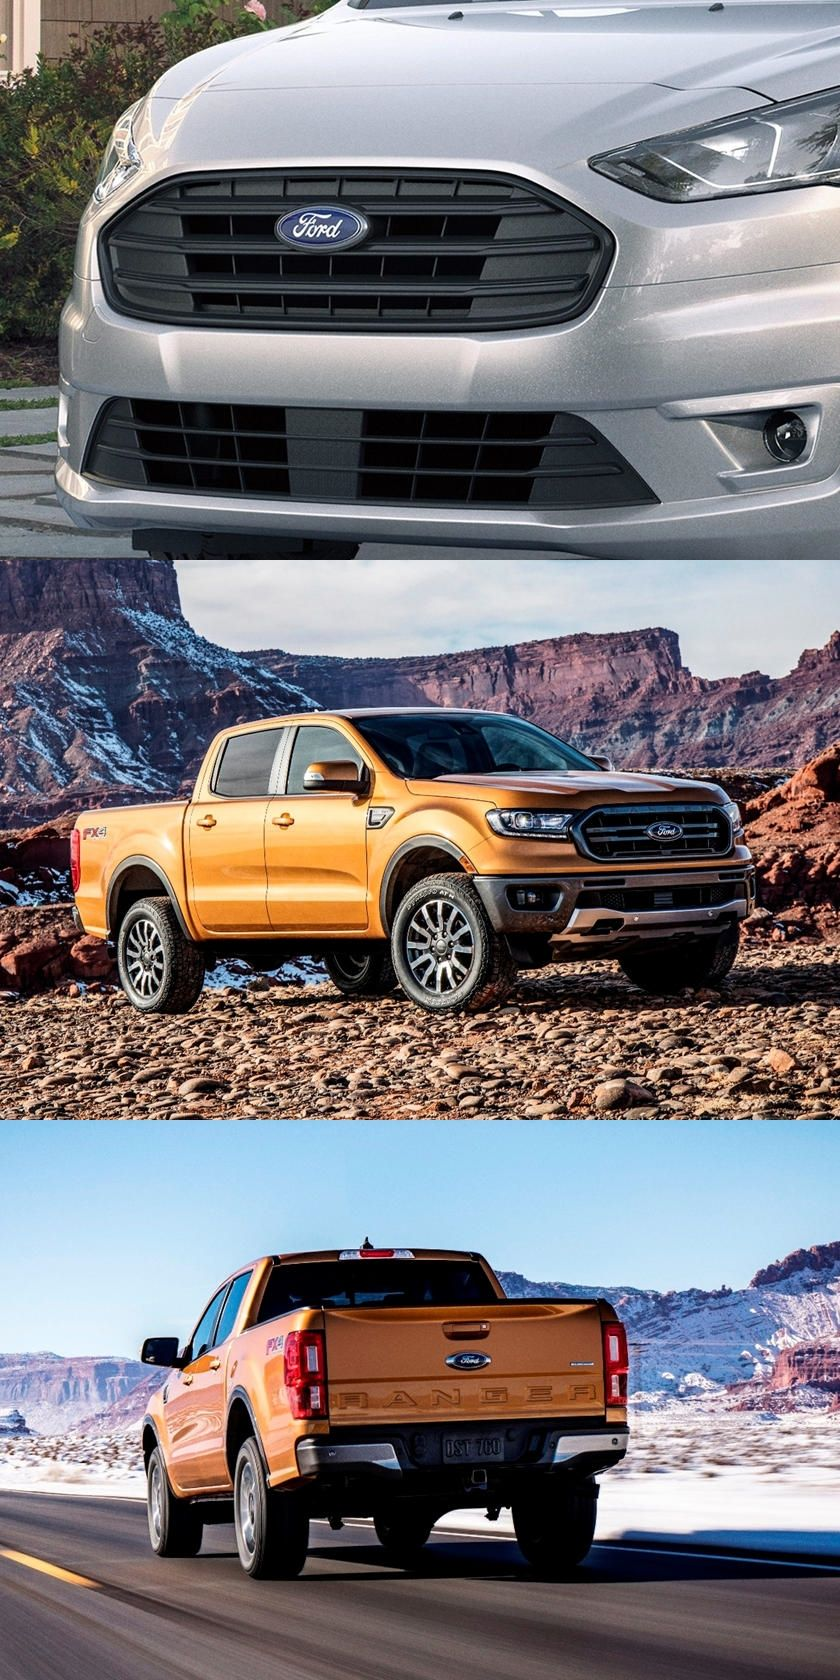 Maxlider Bros Delve Into Trucks With Their 2020 Ford Ranger Man Of Many Ford Ranger 2020 Ford Ranger Ford Ranger Truck